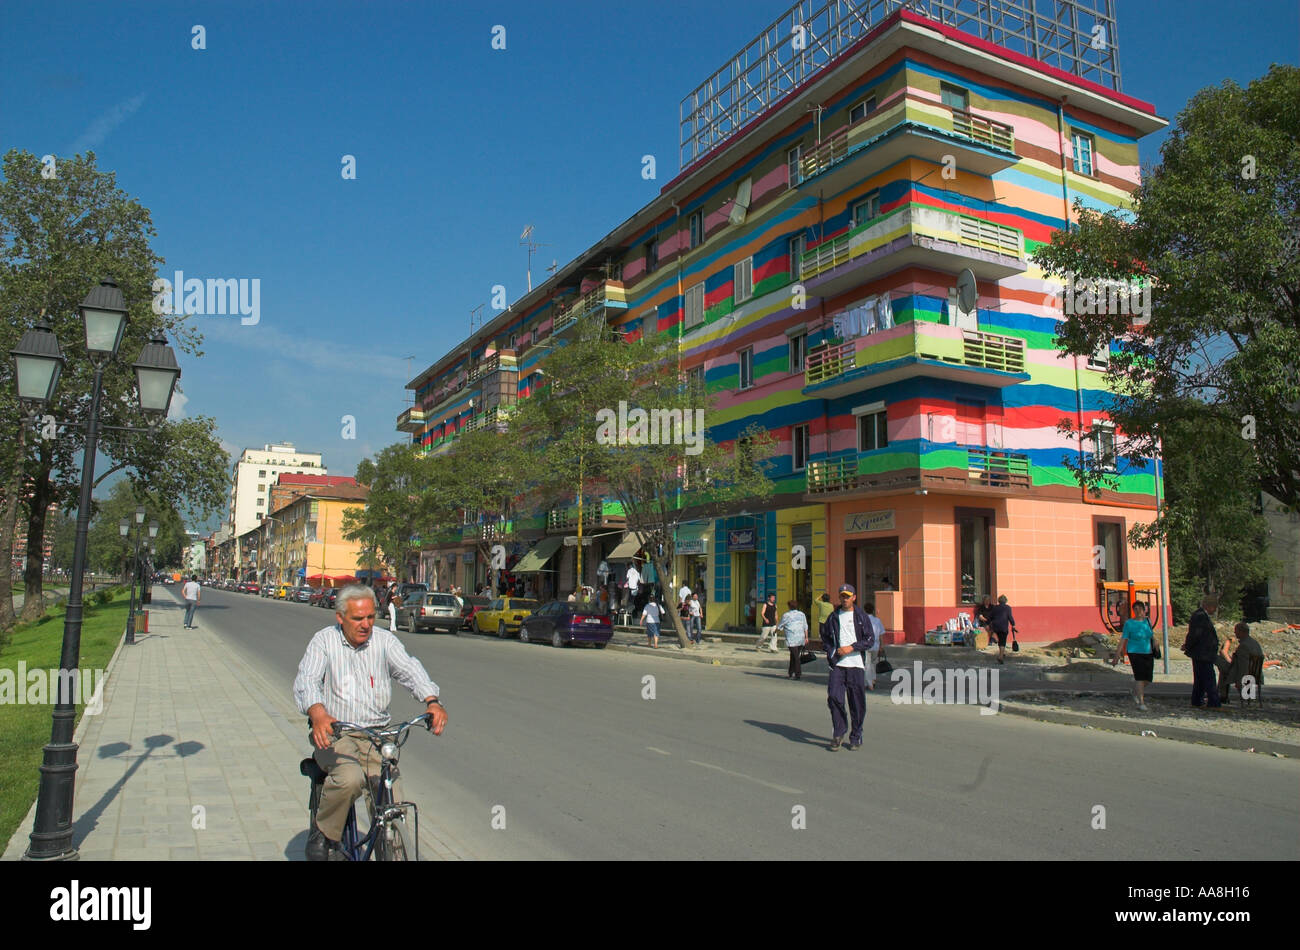 Albania Tirana Downtown Bajram Curri boulevard view with road and freshly repainted building in bright colours - Stock Image